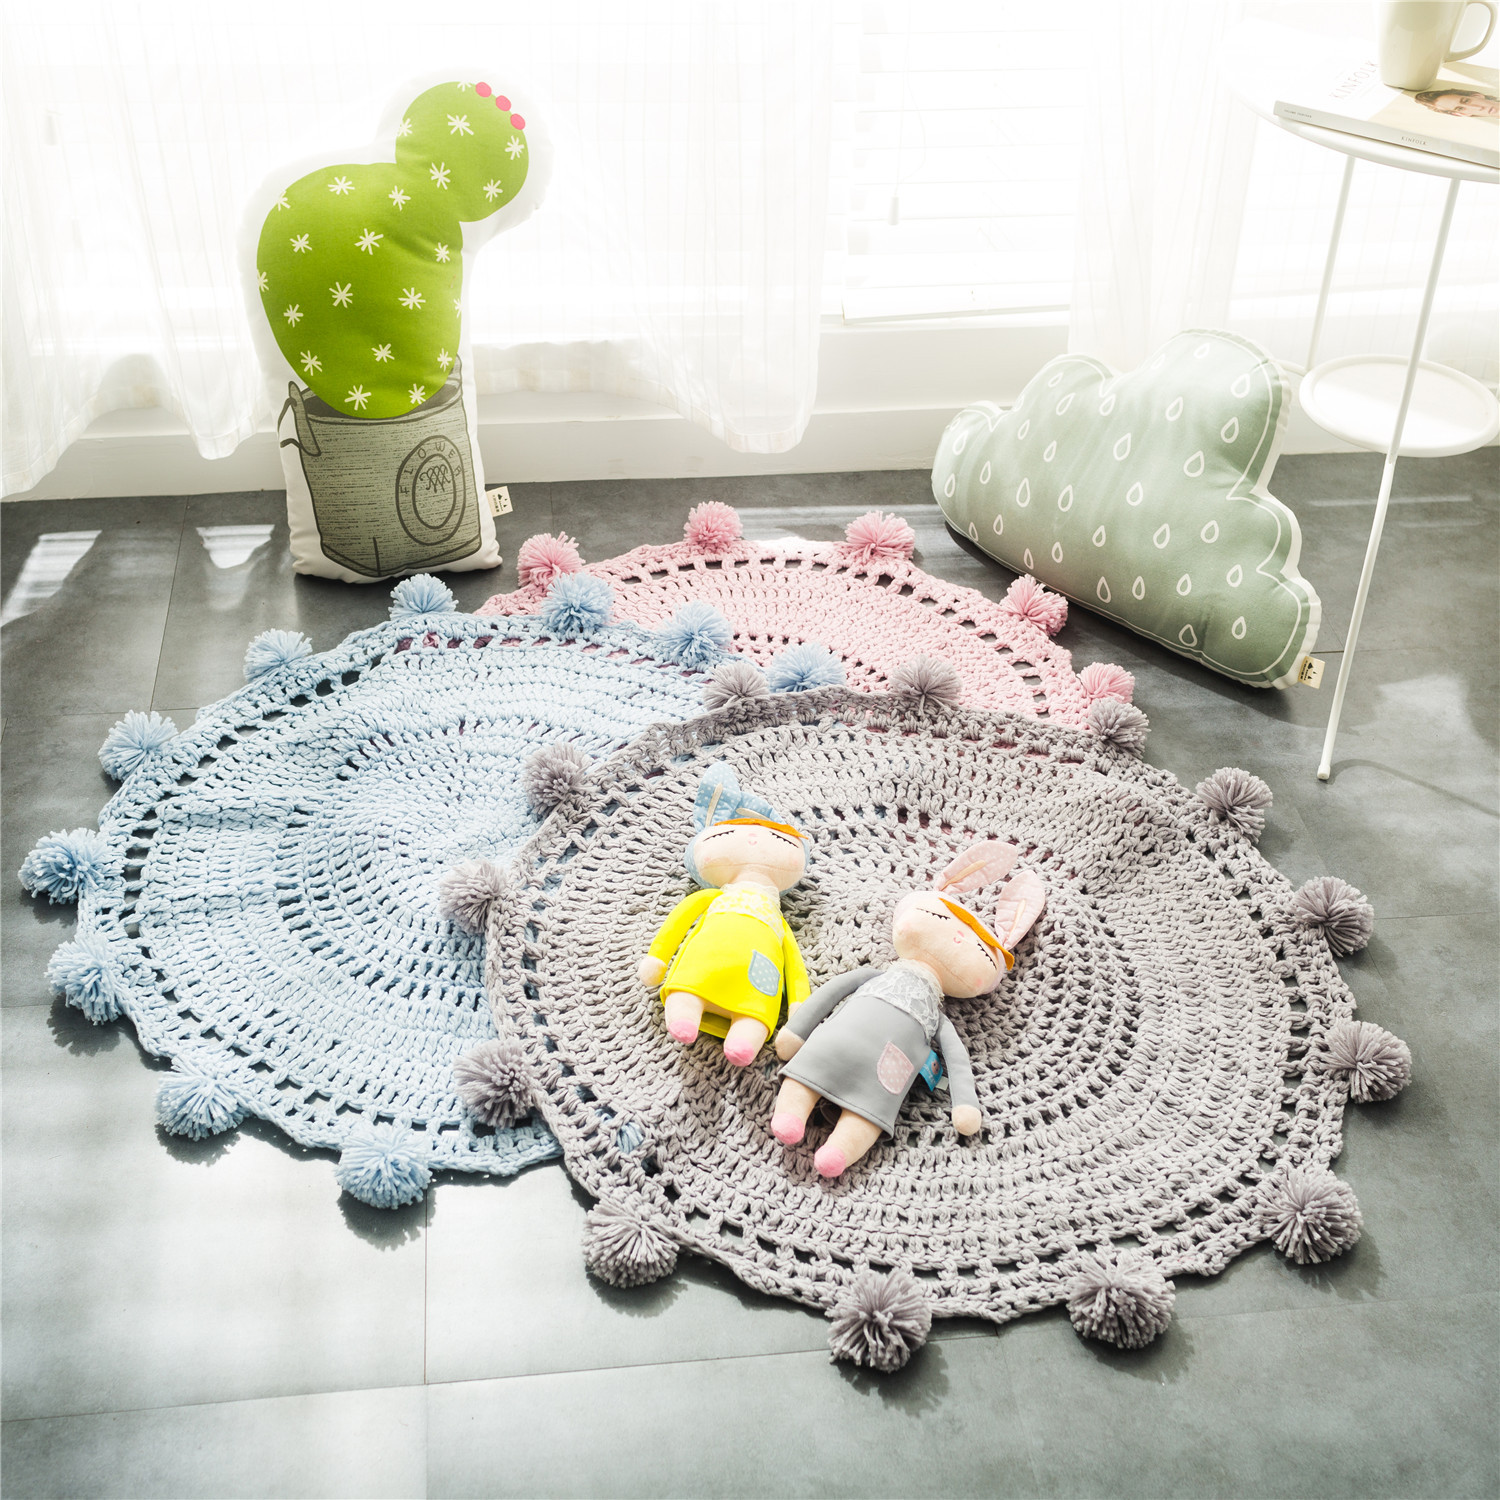 Home Decor 80CM Knitted Floor Mat Hand Woven Pure Color Carpets Round Rug Window Pad Kids Bedroom Play Rug Prop Tapis Wholesale